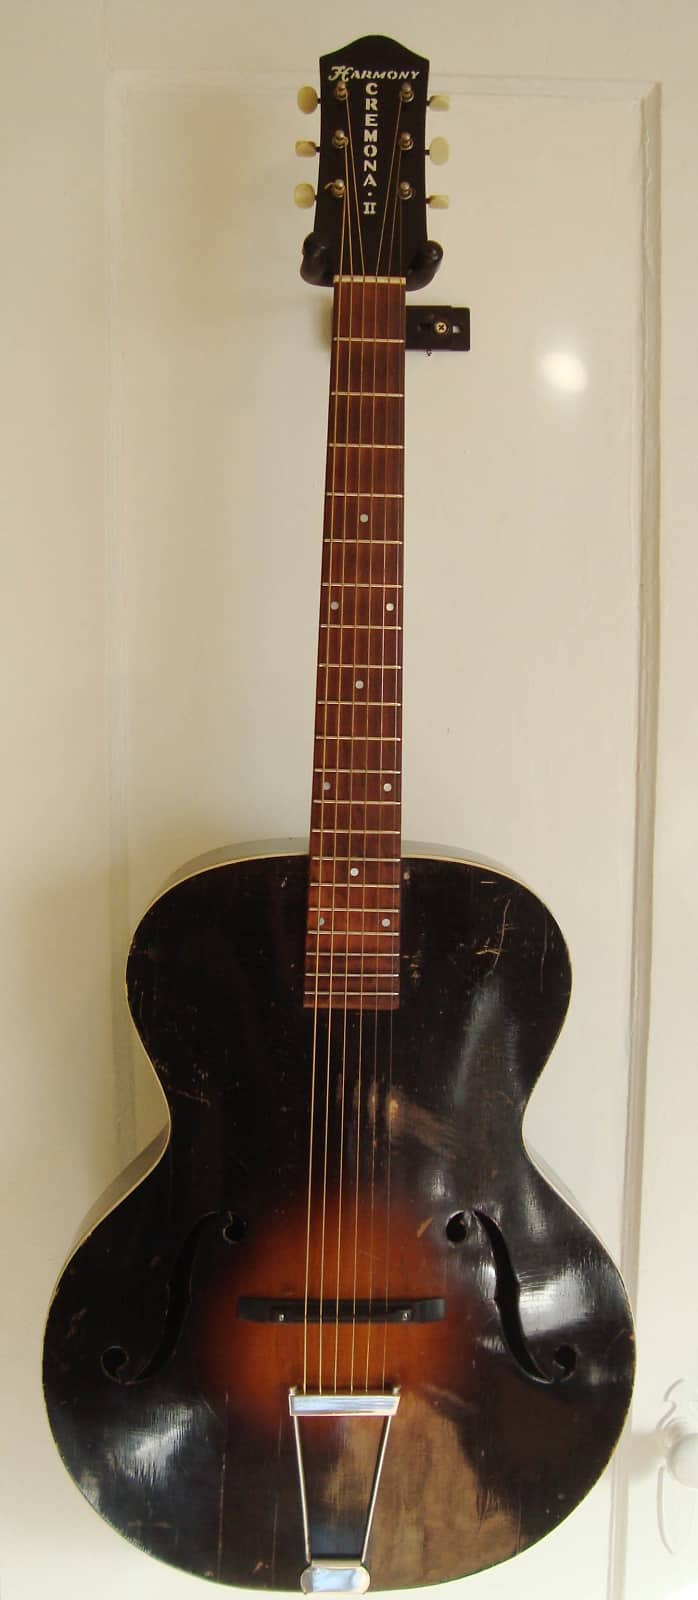 What do you guys think of this guitar? Harmony H1213